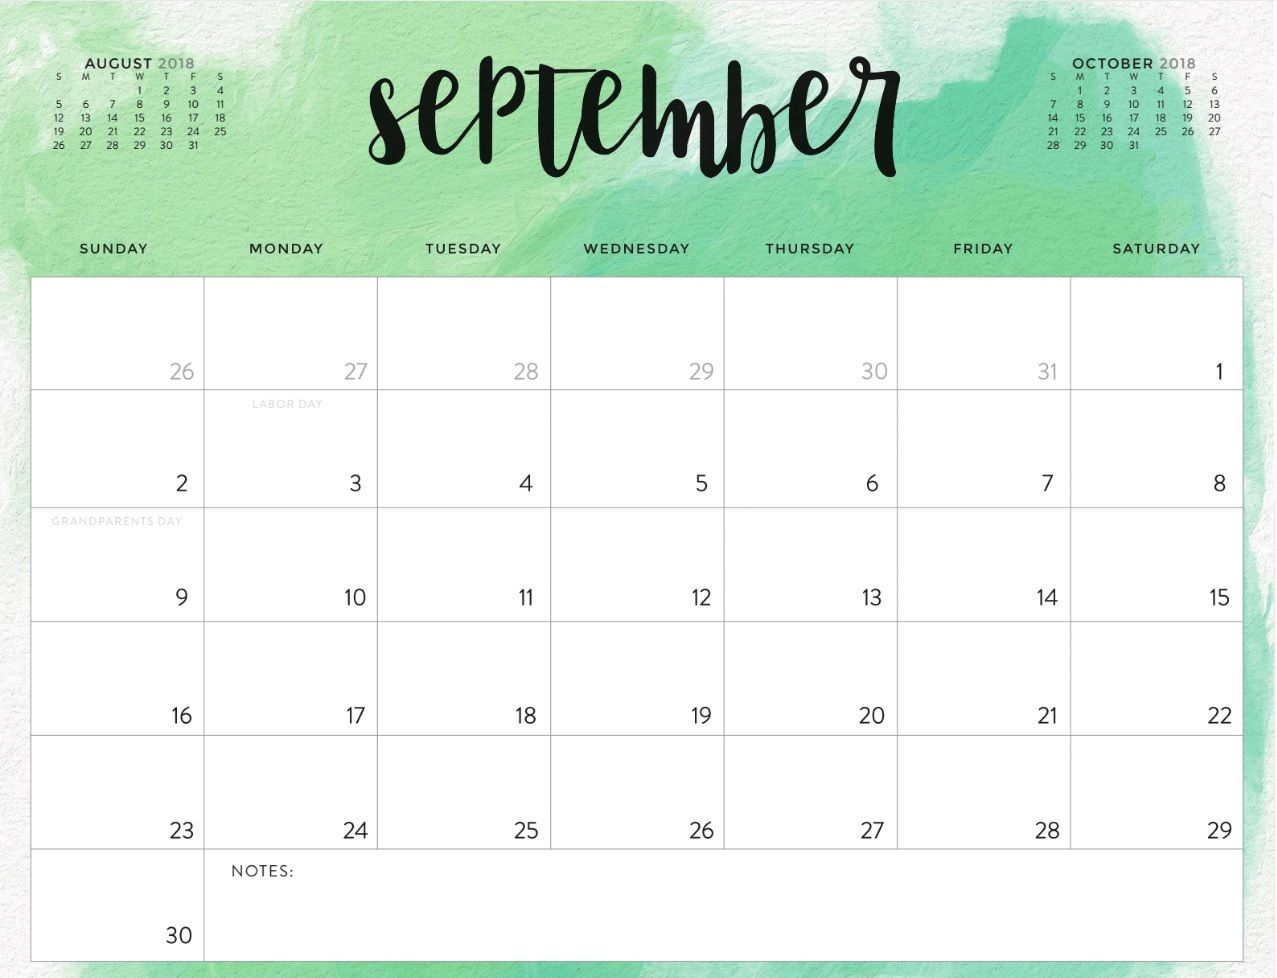 graphic regarding September Printable Calendar identify September 2018 Calendar Printable Water resistant Printable